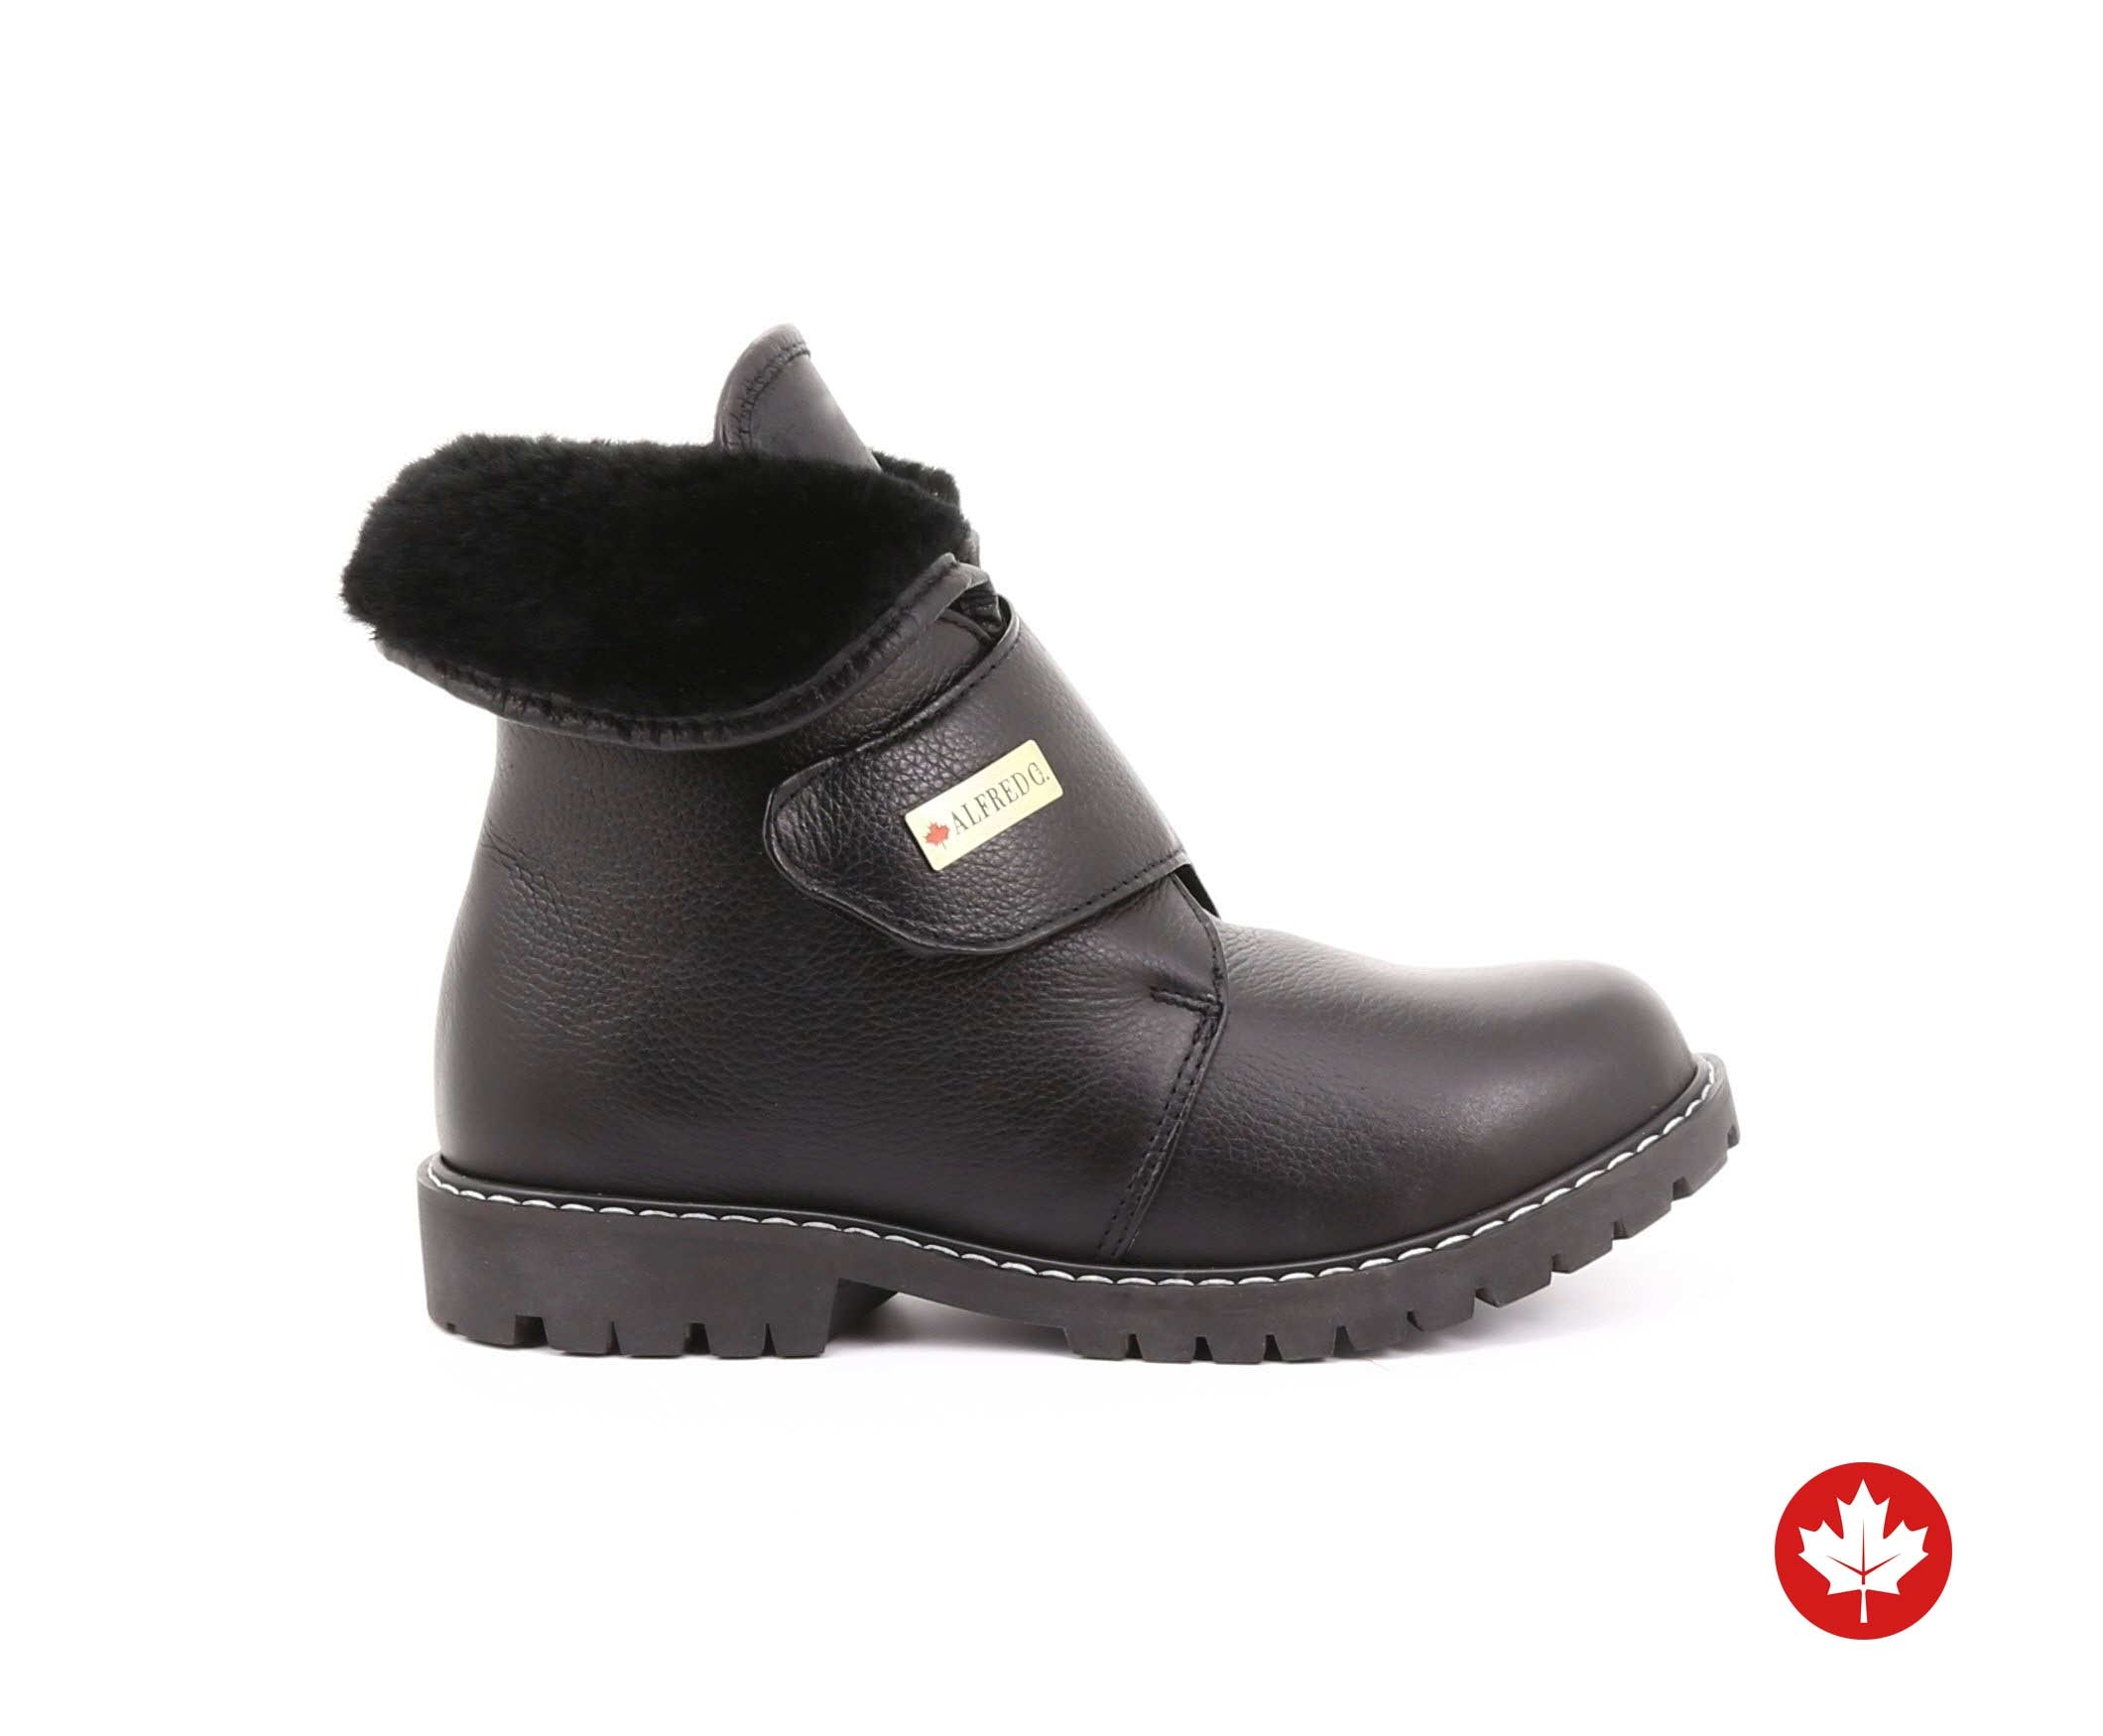 Taffy Women's Winter Boot with Retractable Cleats